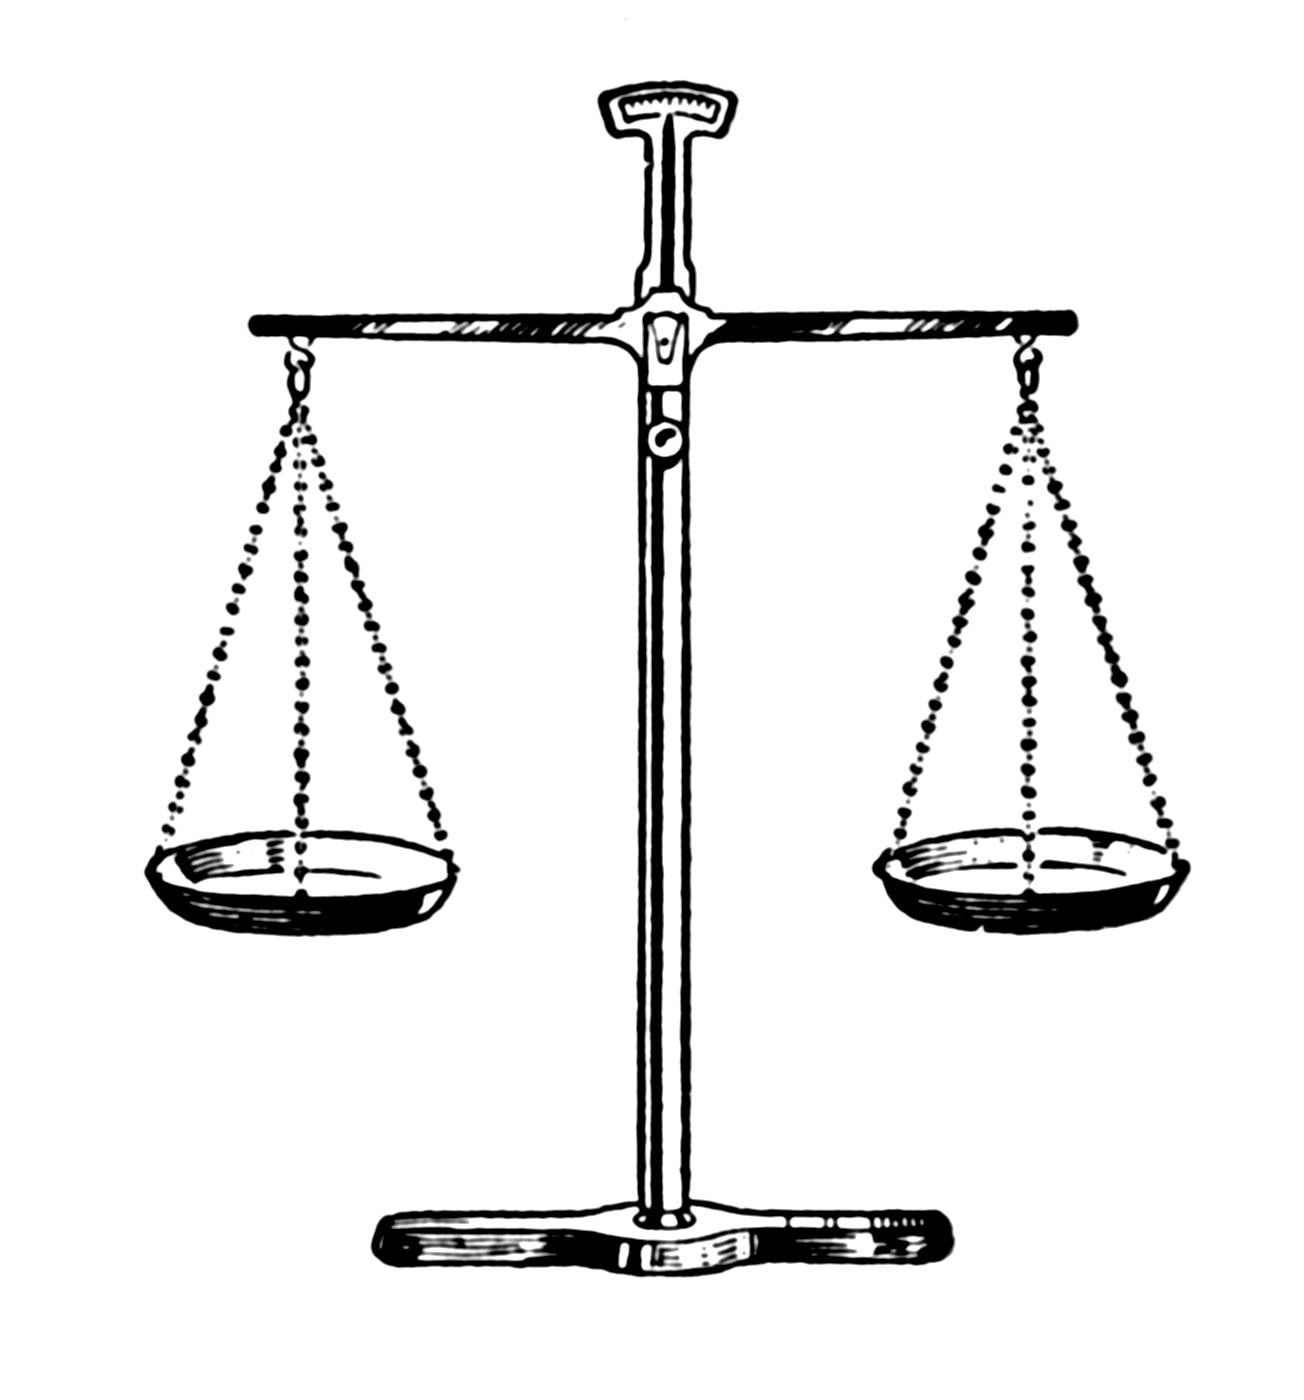 Justice clipart weigher. Ugh habeas corpus in